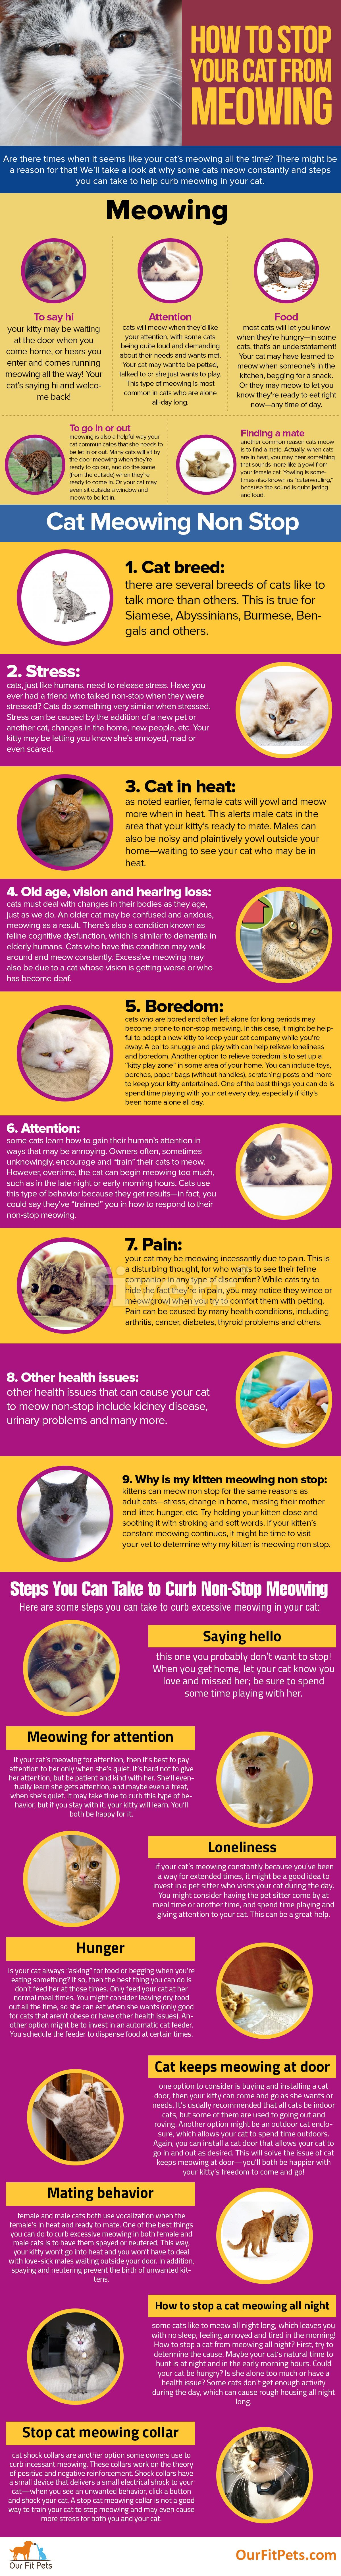 How To Stop Your Cat From Meowing Our Fit Pets Cat Advice Cats Meows